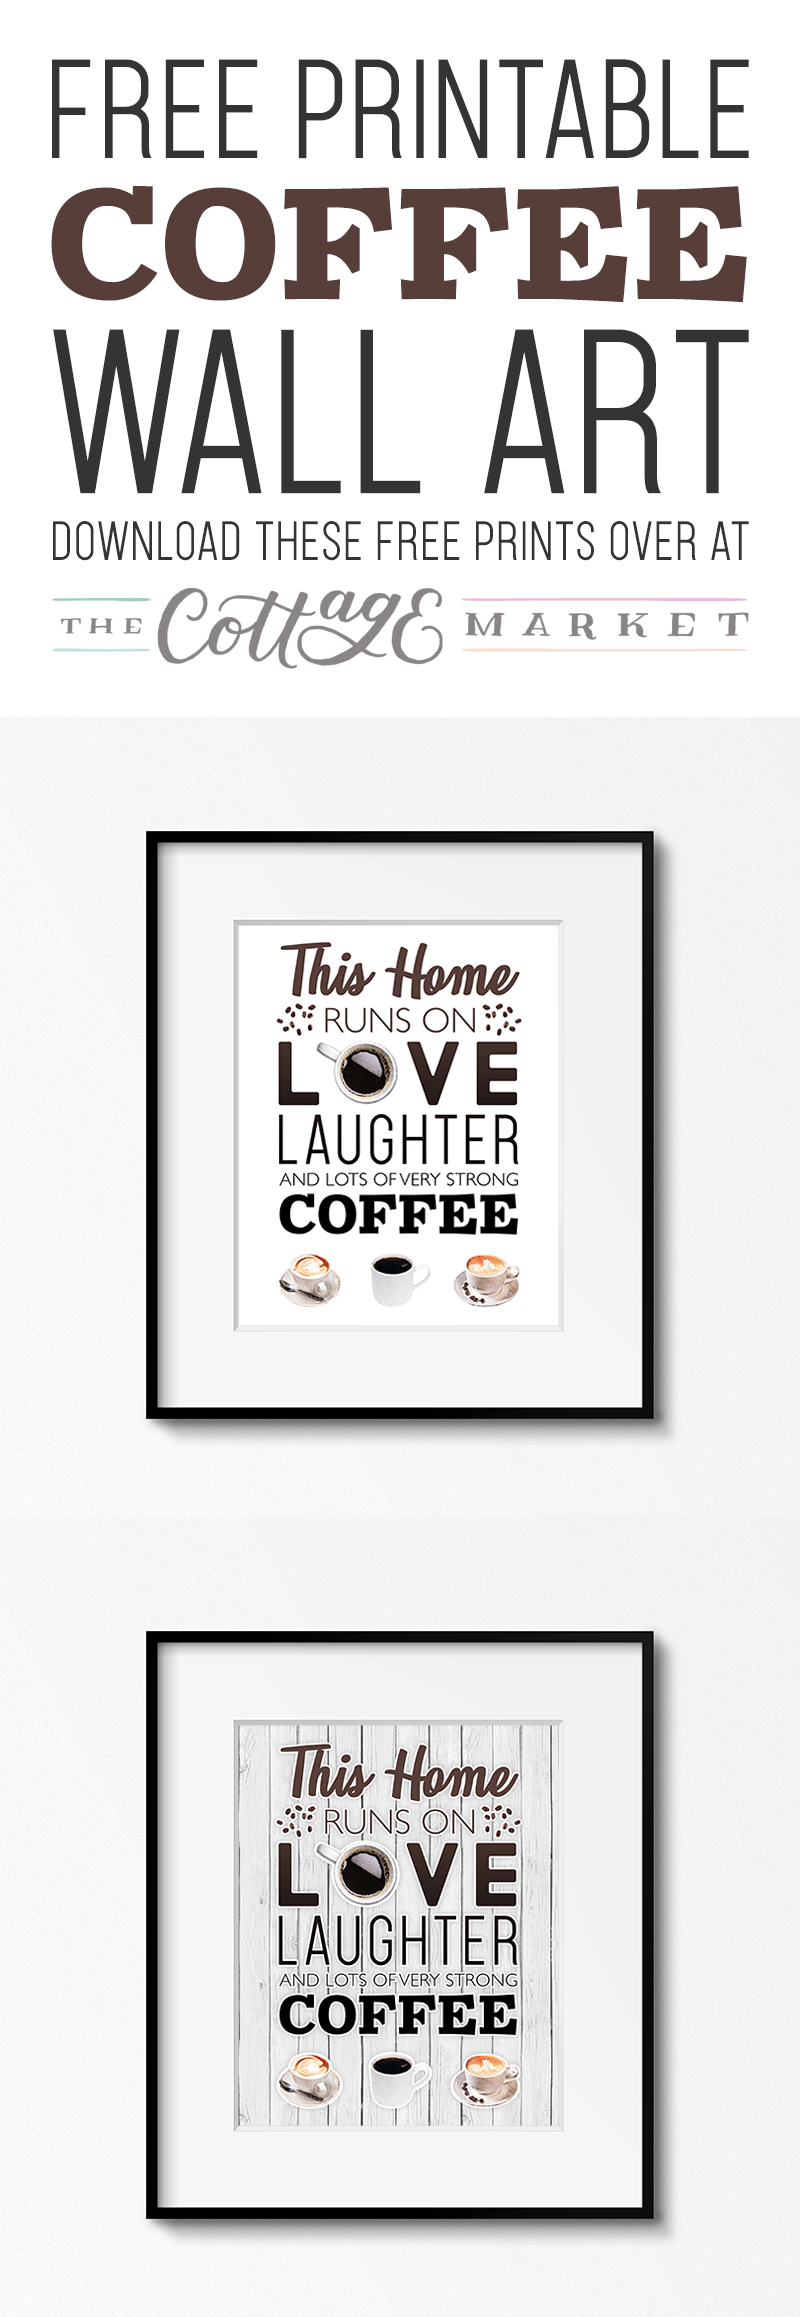 https://thecottagemarket.com/wp-content/uploads/2019/06/TCM-Coffee-WallArt-T.jpg